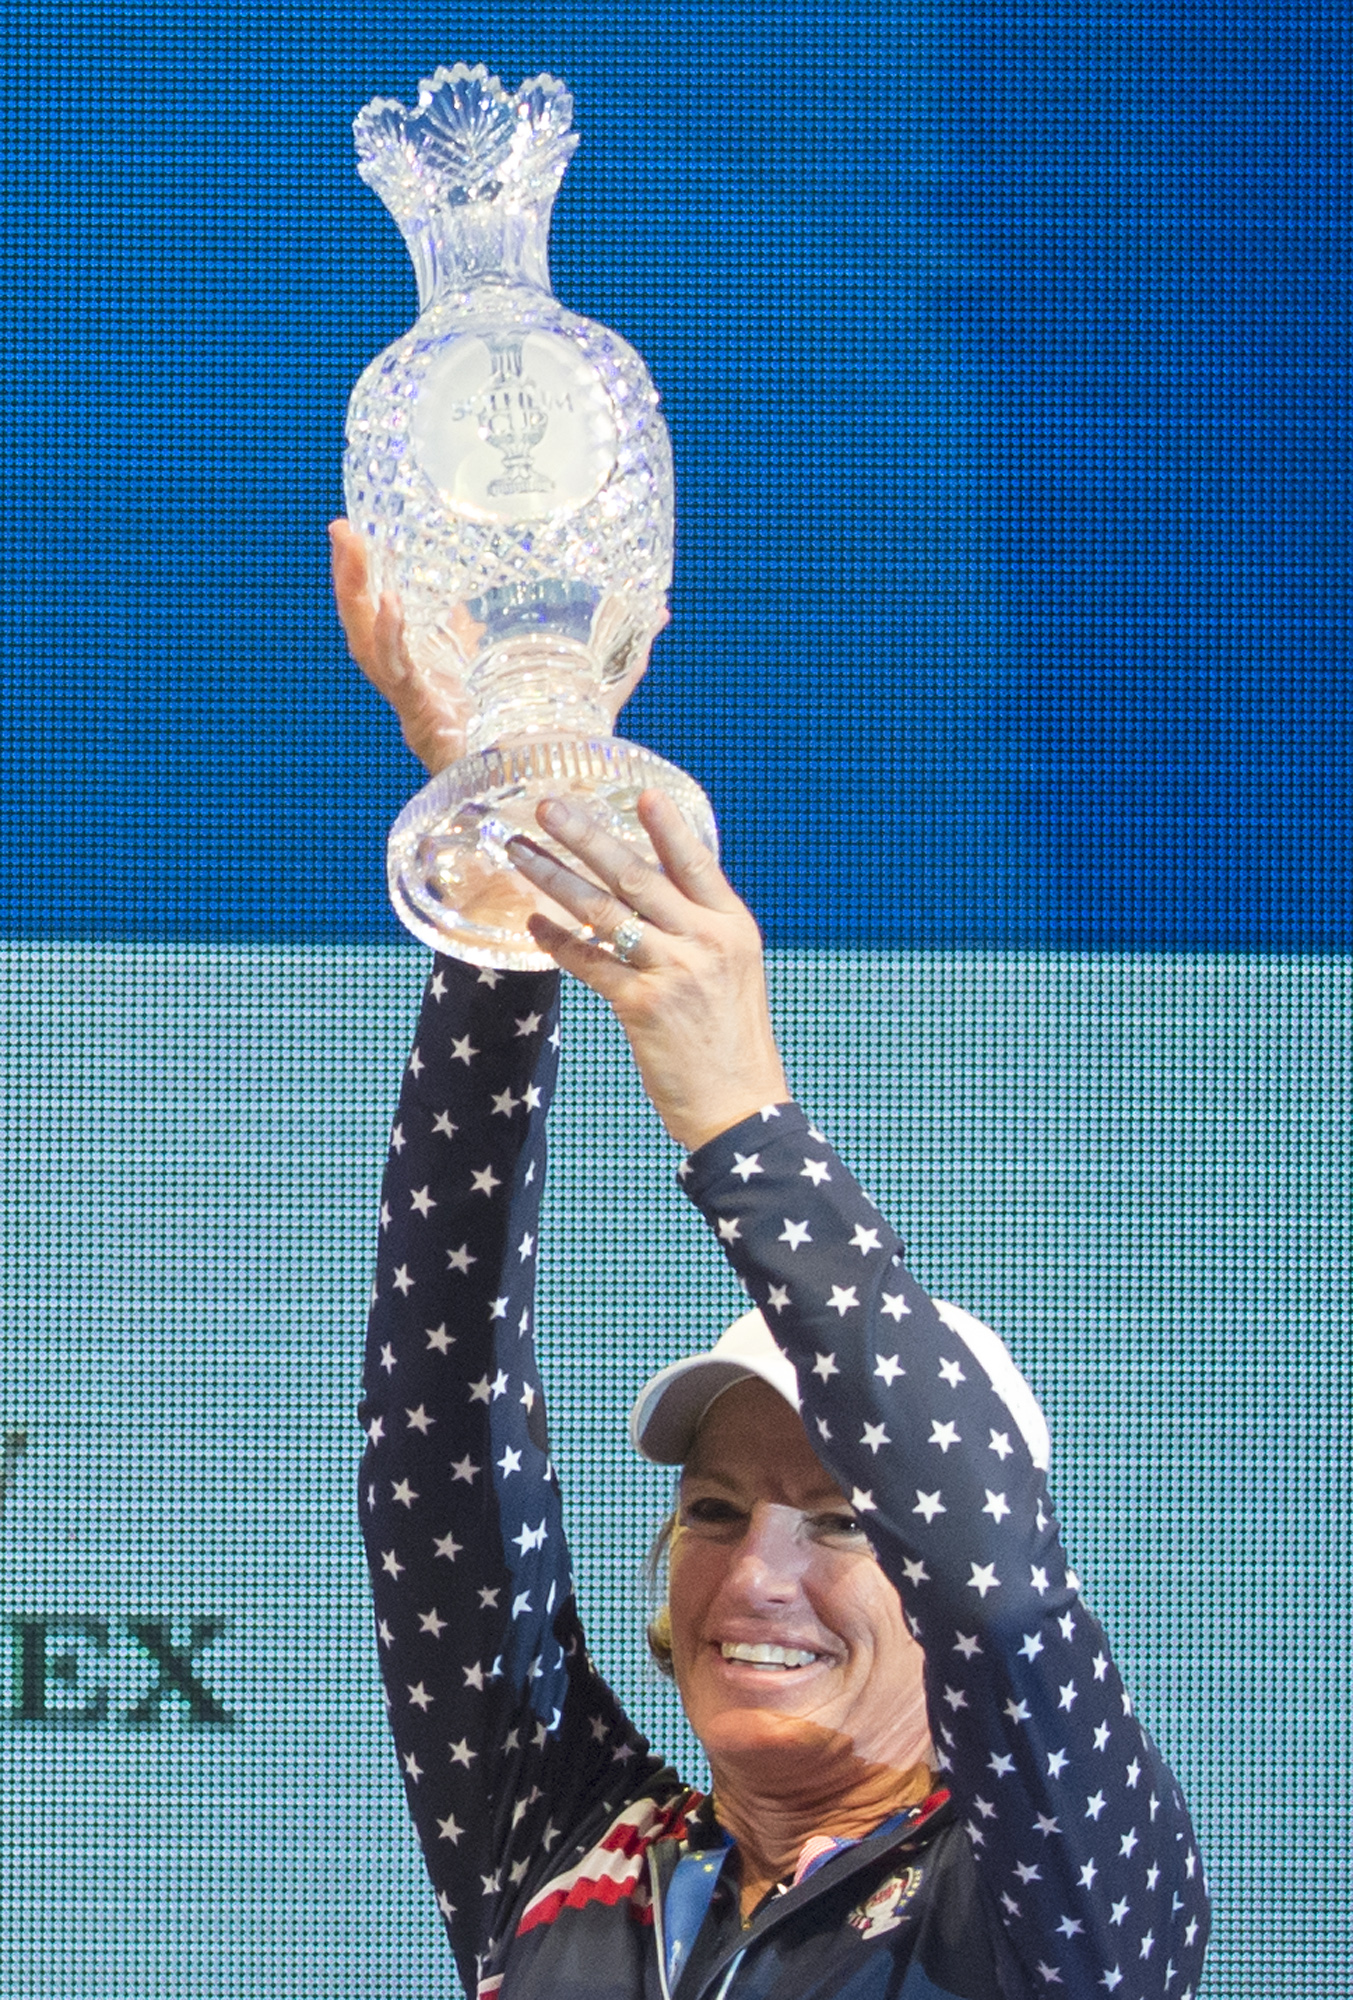 Juli Inkster, team captain of the United States, holds the trophy during the award ceremony at the Solheim Cup golf tournament in St. Leon-Rot, southern Germany, Sunday, Sept. 20, 2015. U.S. Paula Creamer defeated Germany's Sandra Gal to complete a remark